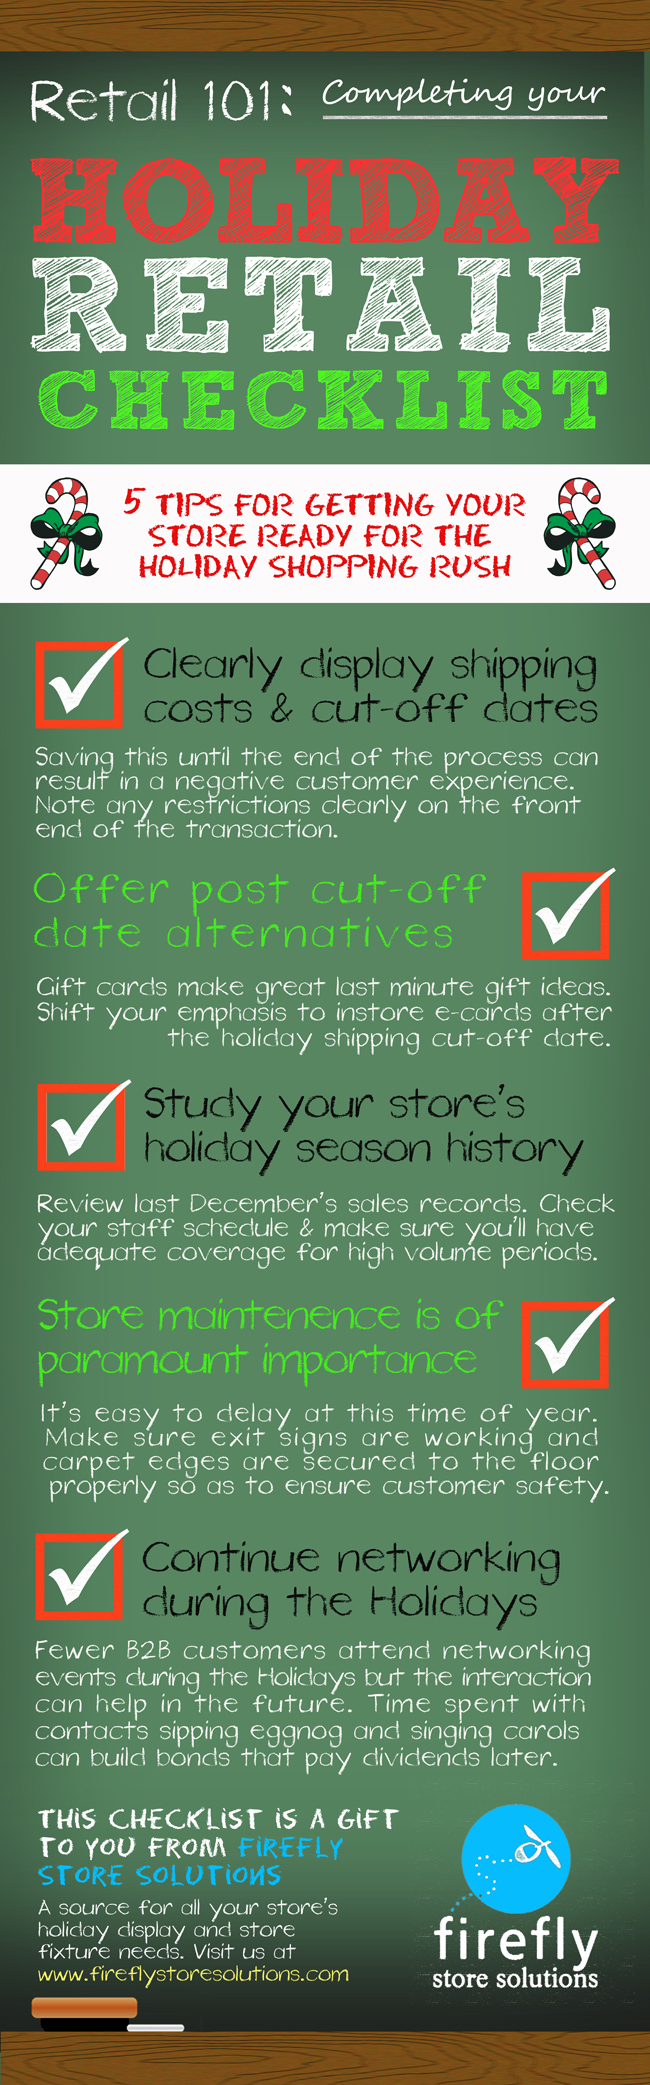 holiday retail checklist